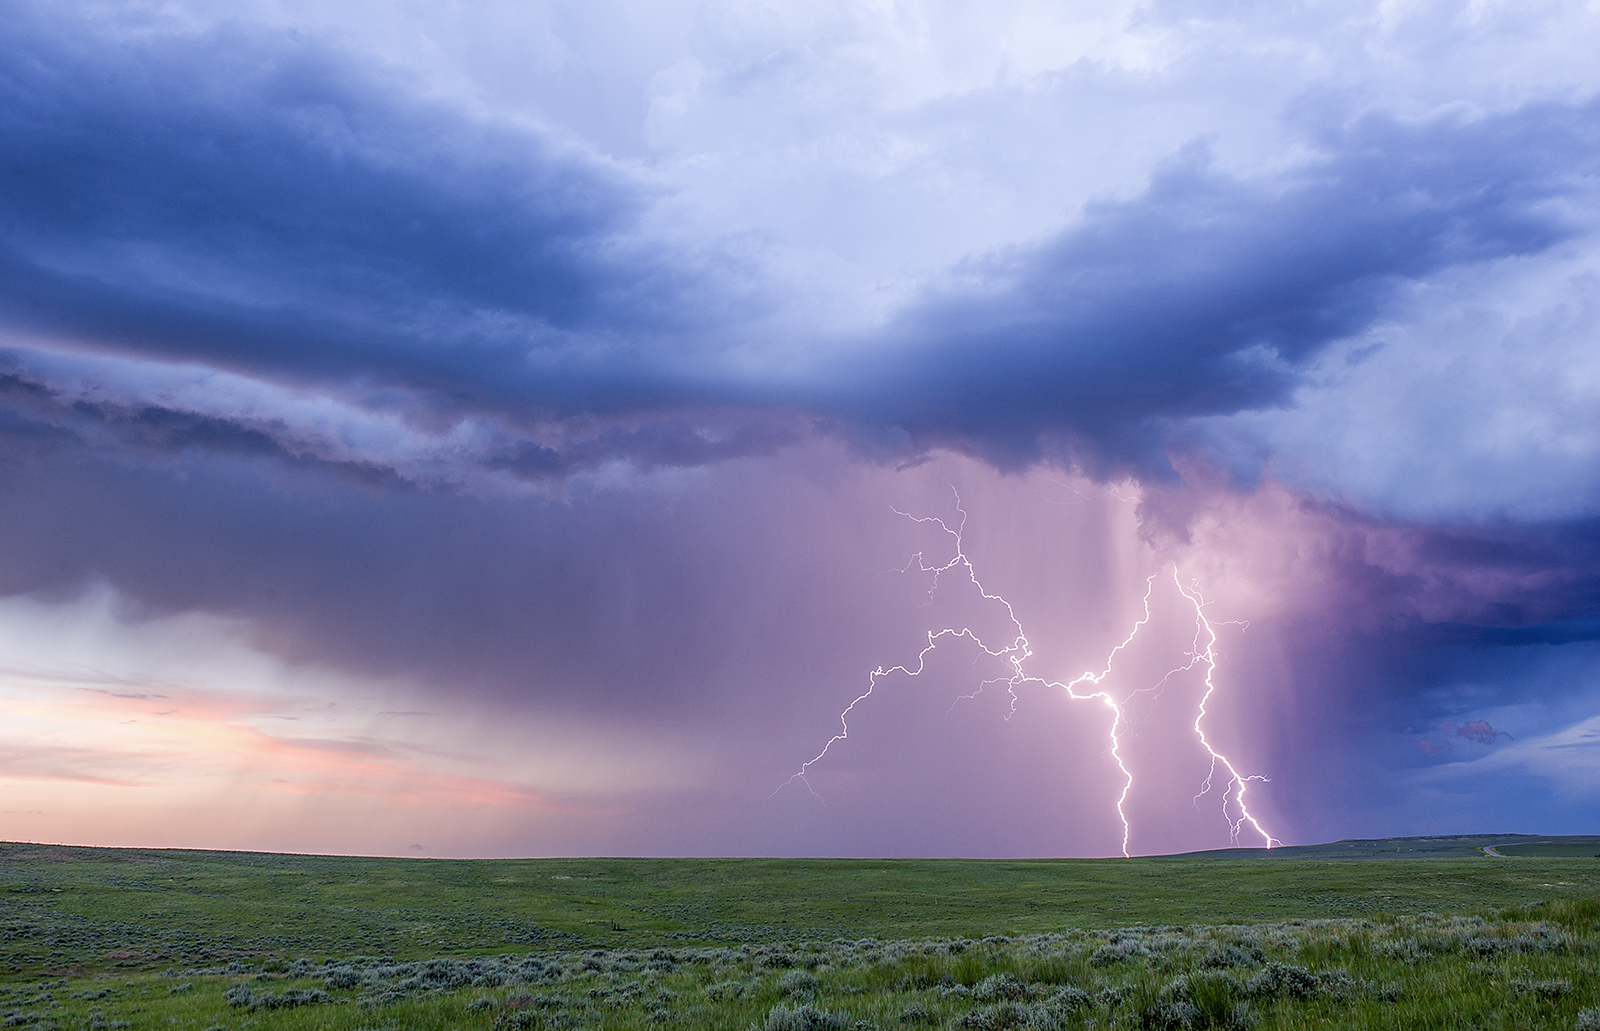 Cloud-to-ground lightning bolts strike a field in eastern Wyoming.